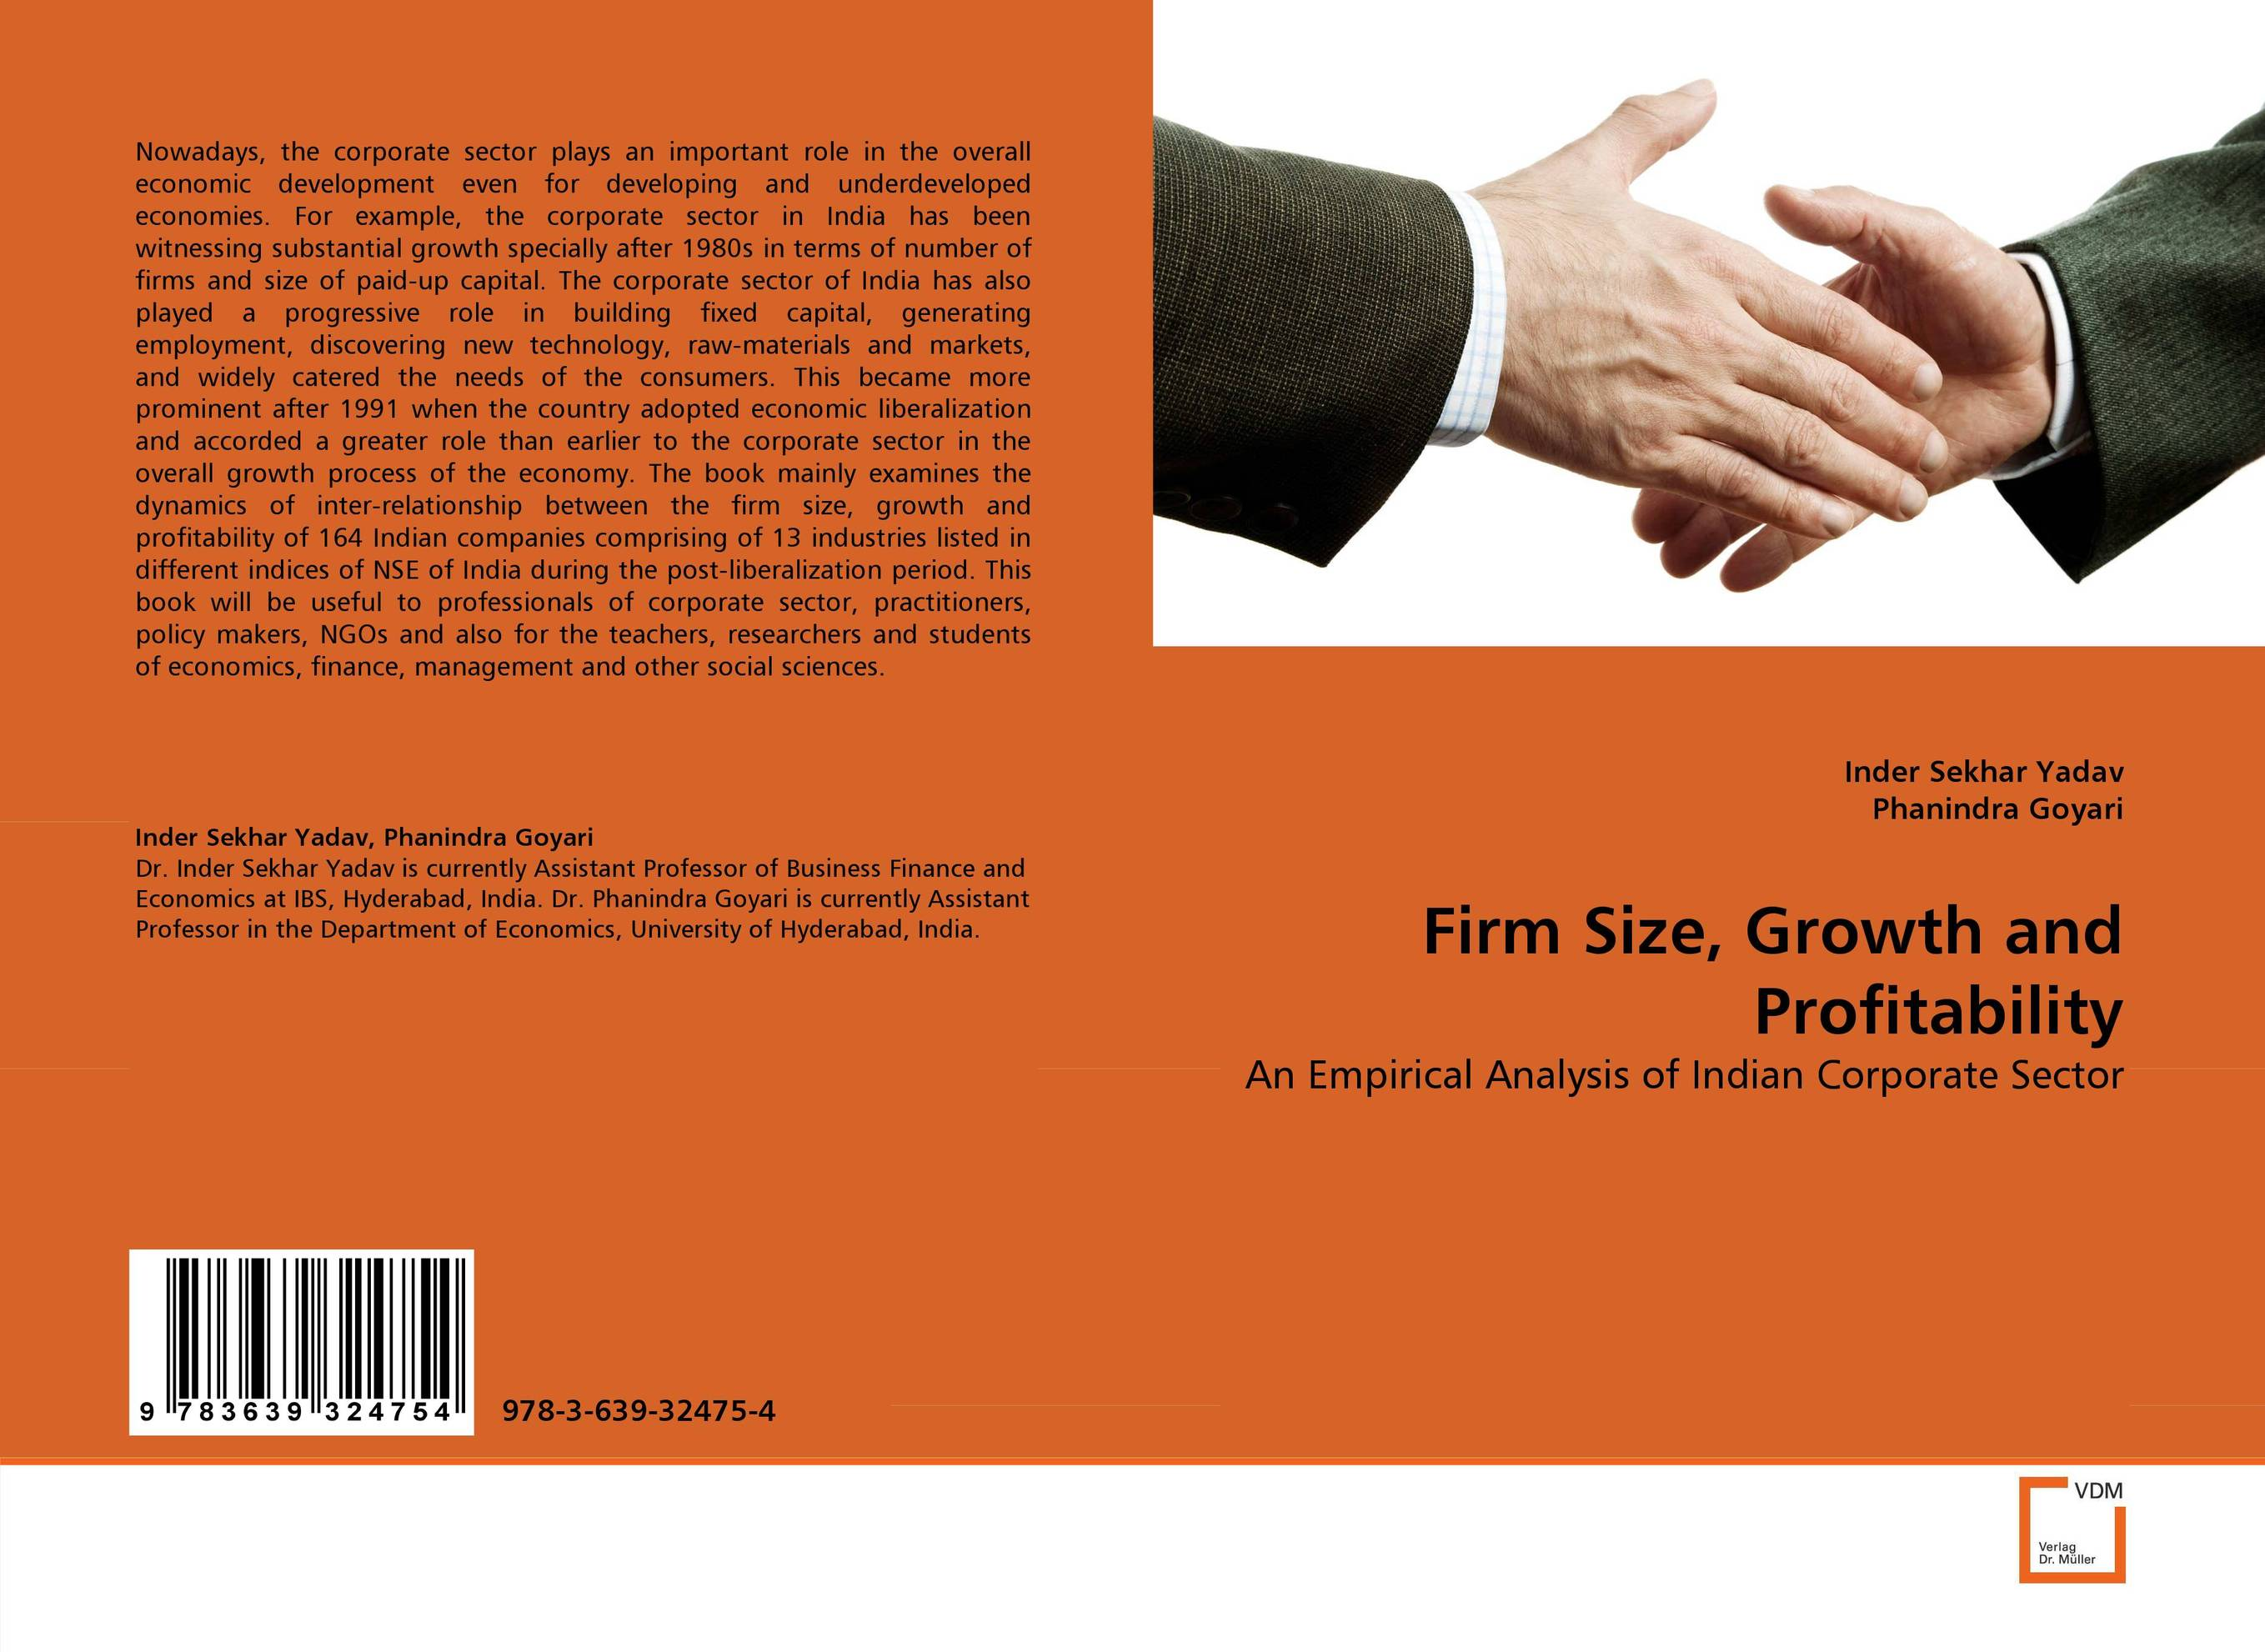 Firm Size, Growth and Profitability customer orientation as a basis for corporate growth